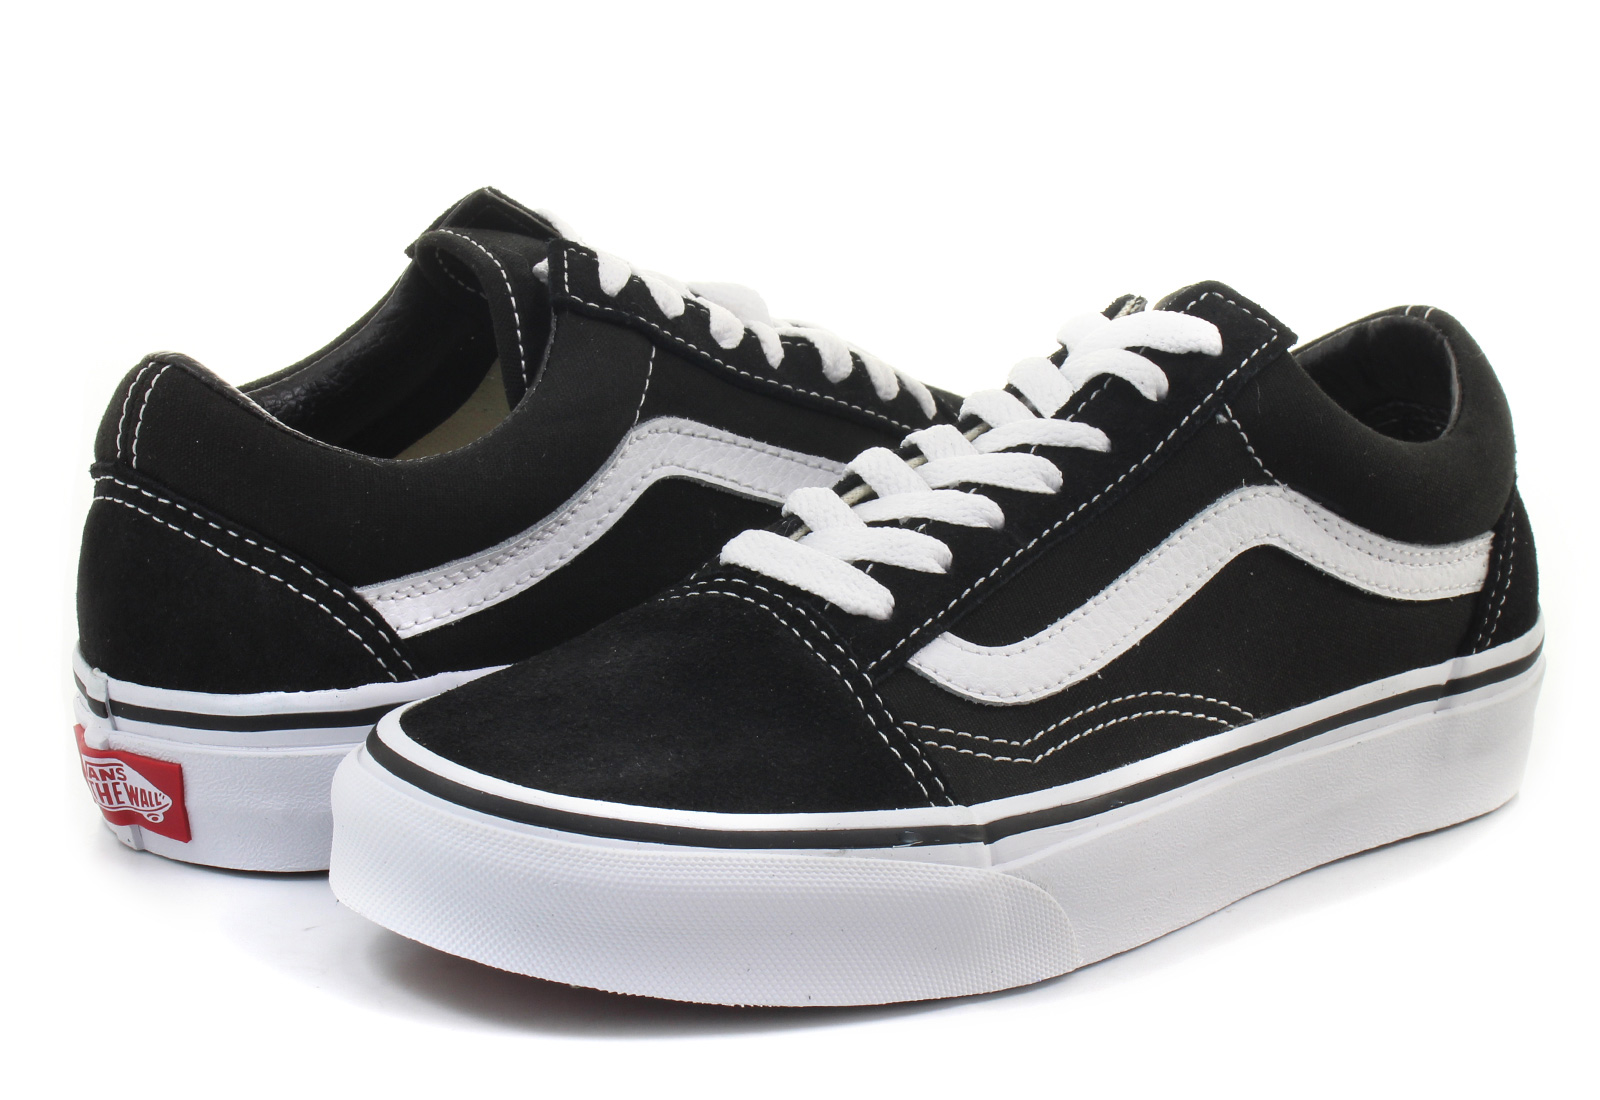 Vans Niske Cipele Crne Cipele - Ua Old Skool - Office Shoes - Online ... 9eea782663